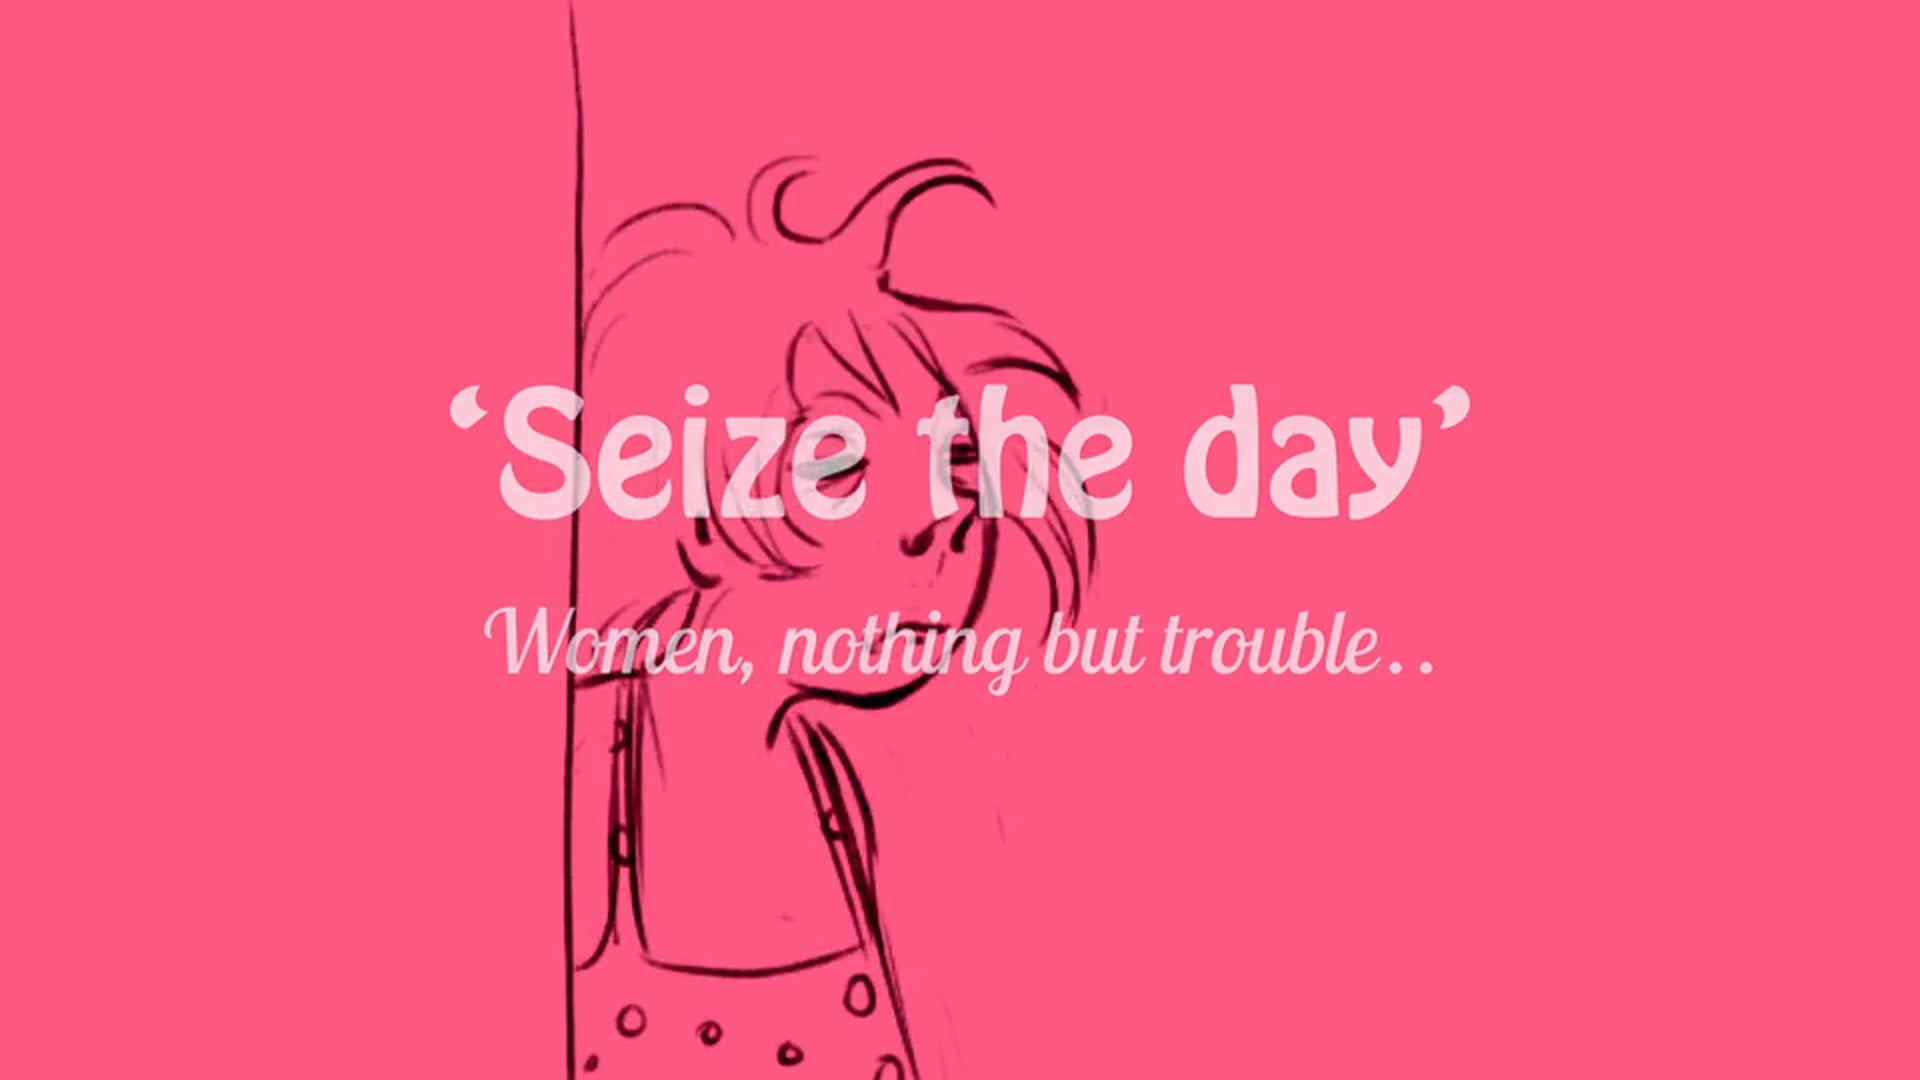 Seize The Day (Women Nothing But Trouble)